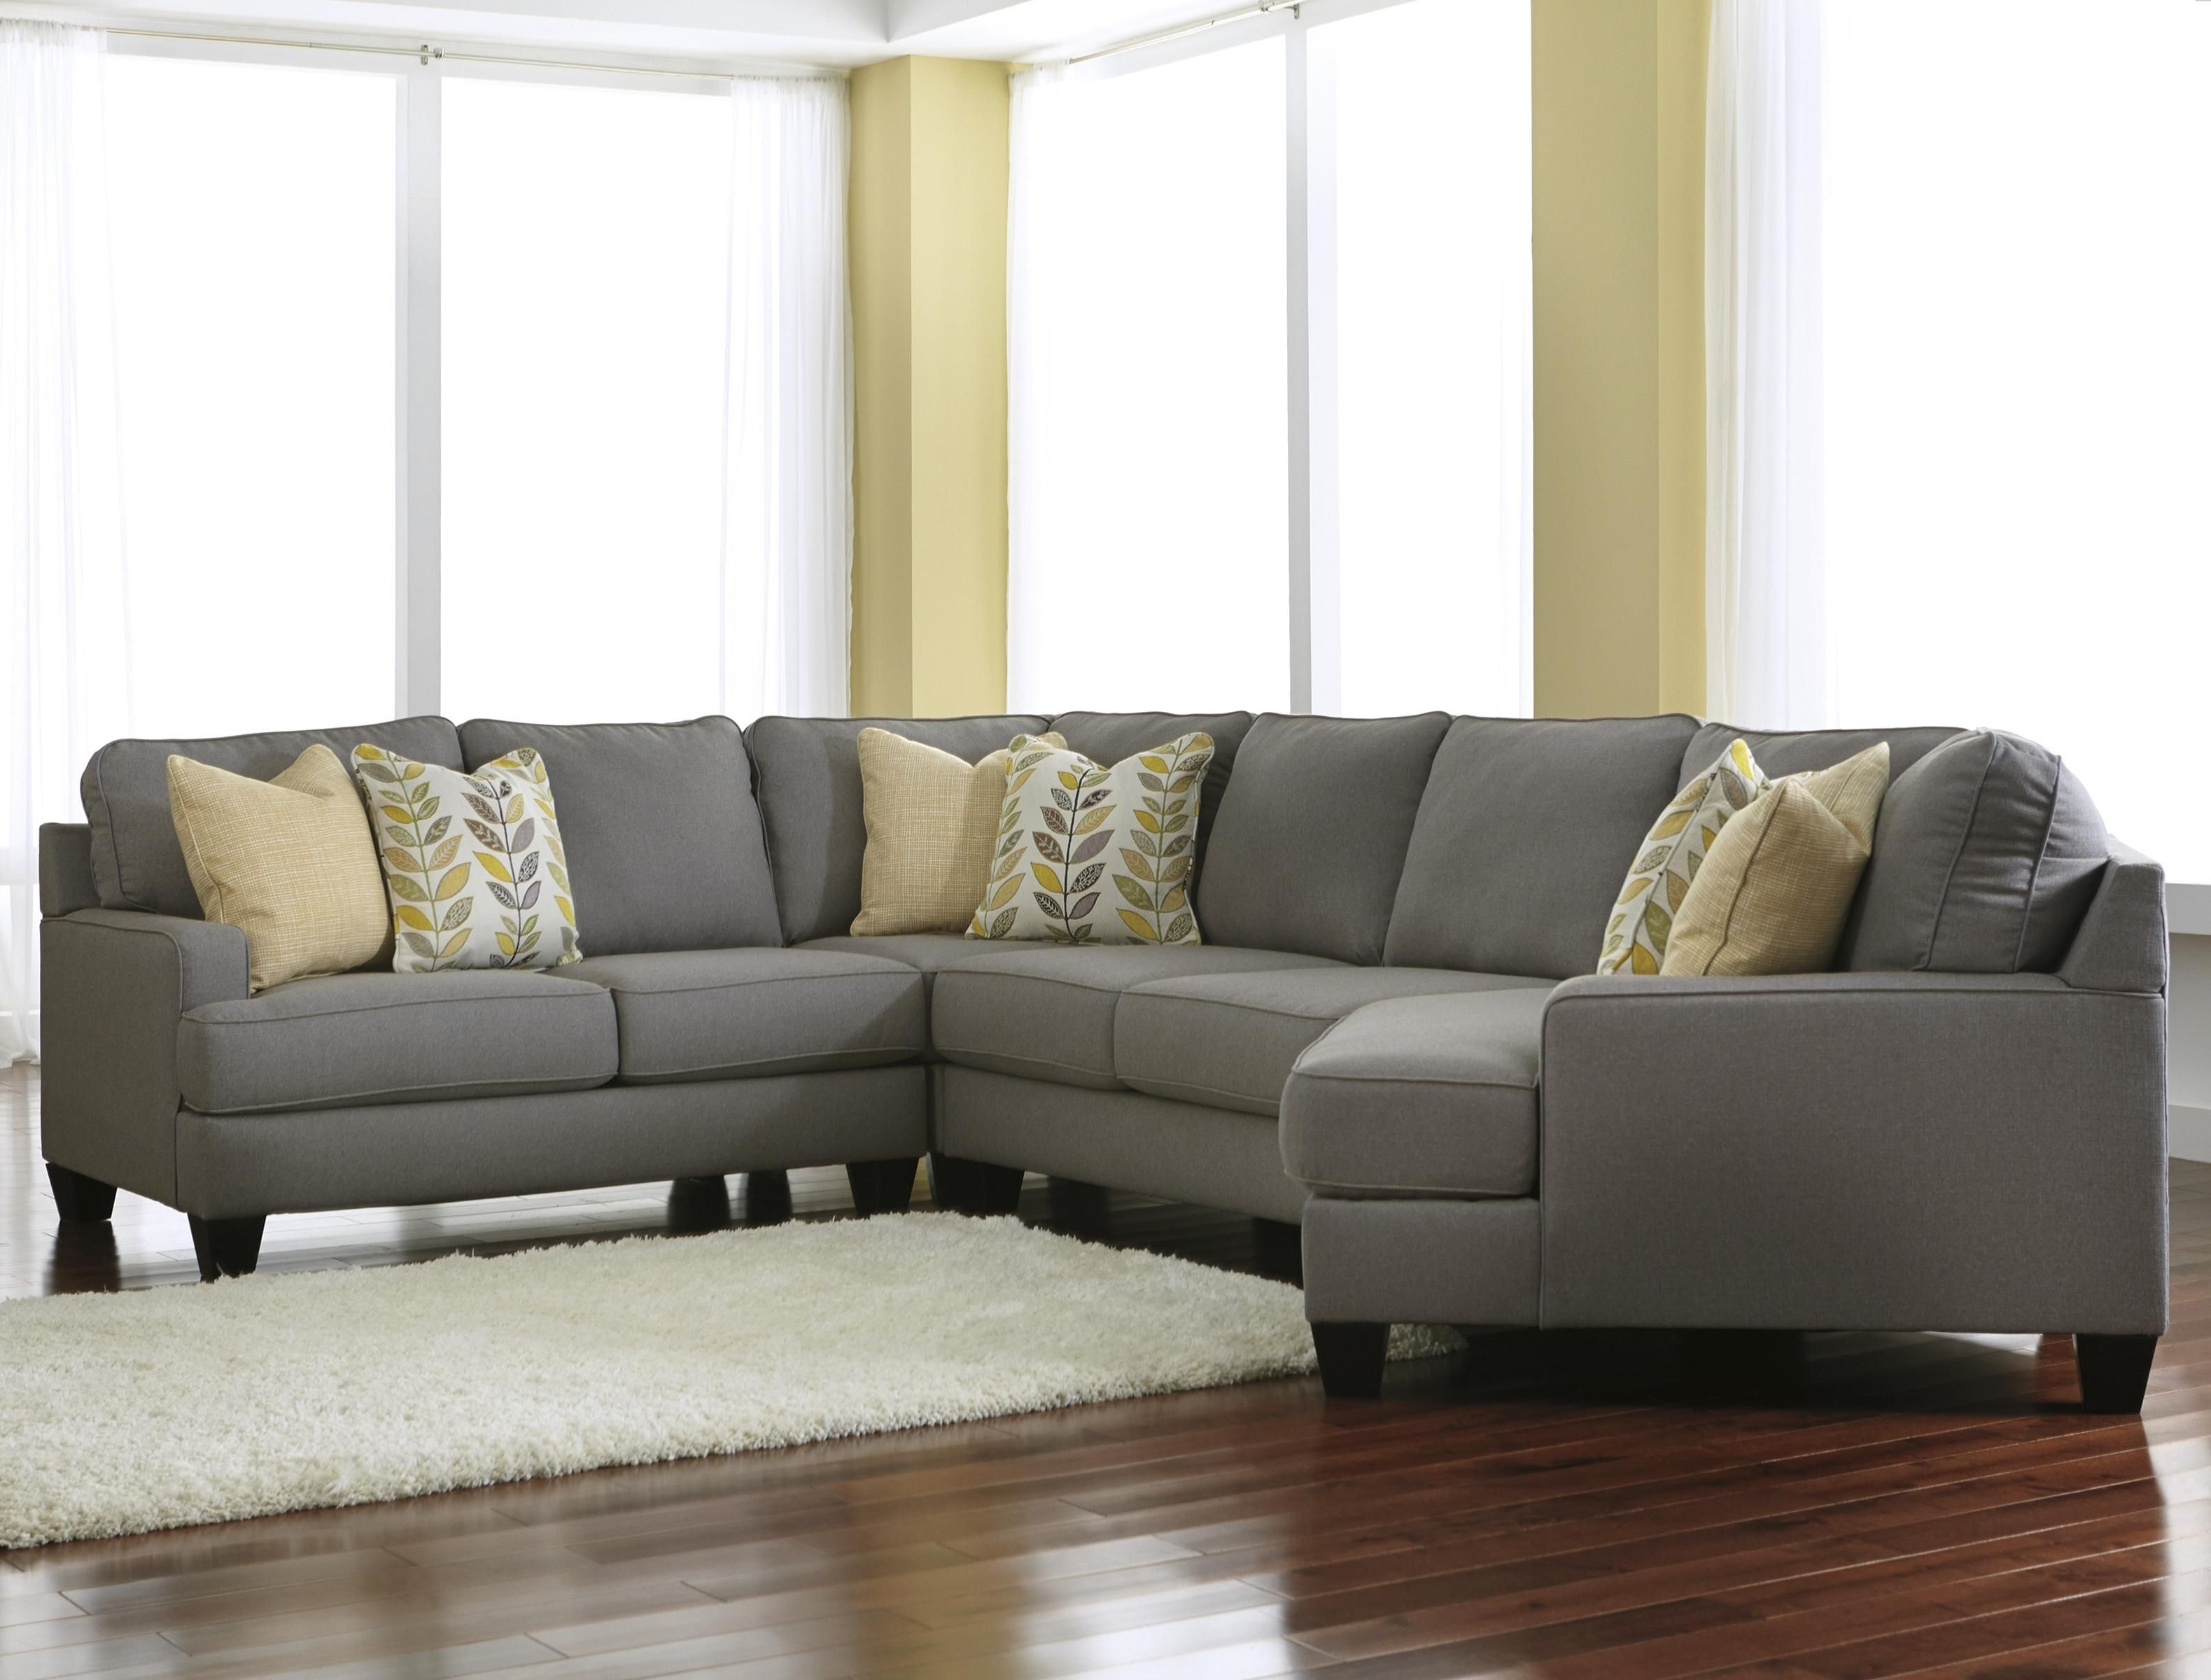 Popular Chamberly – Alloy Modern 4 Piece Sectional Sofa With Left Cuddler With Regard To Johnson City Tn Sectional Sofas (View 10 of 15)